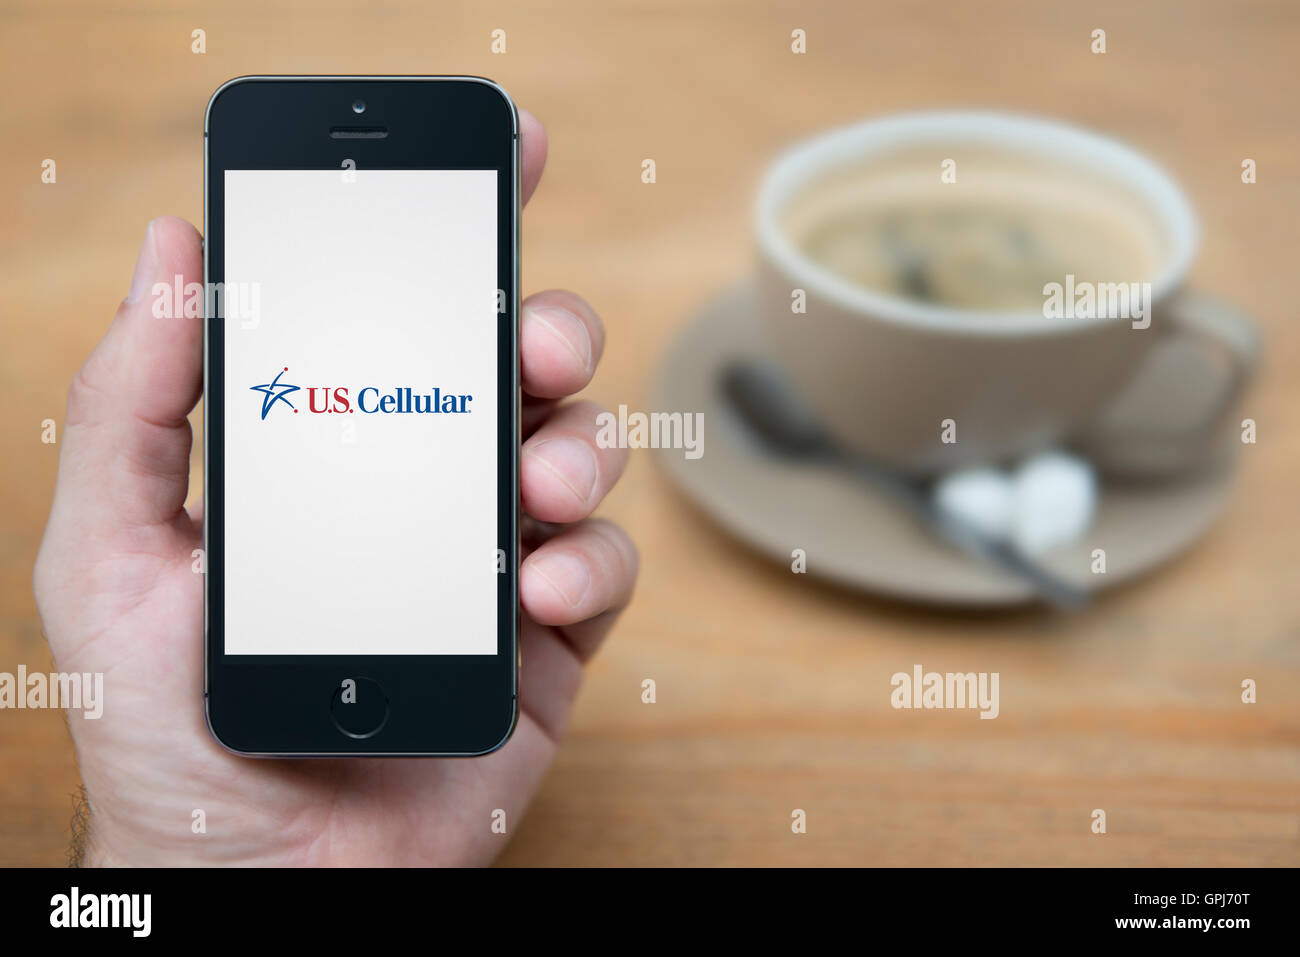 A man looks at his iPhone which displays the U.S.Cellular telecommunications operator logo, with coffee (Editorial - Stock Image